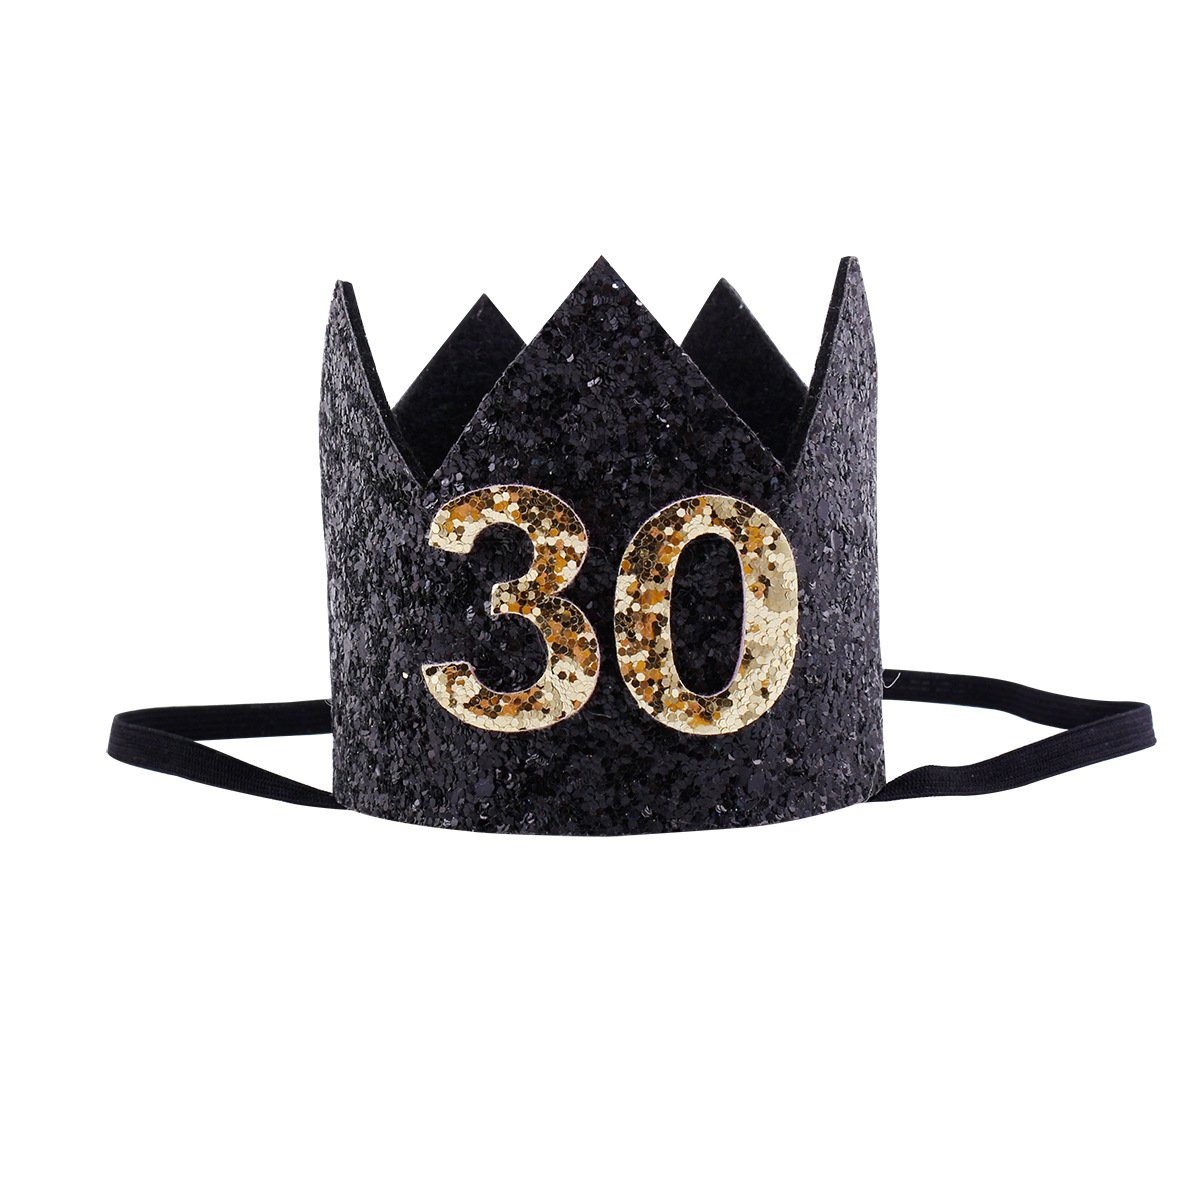 30th Birthday Crown Black Glitter Birthday Crown for 30 Years Old Birthday Party Decorations, Birthday Party Hats for Unisex Adult Women 30 Tiara Headband Mini Birthday Crowns Smash Photo Props